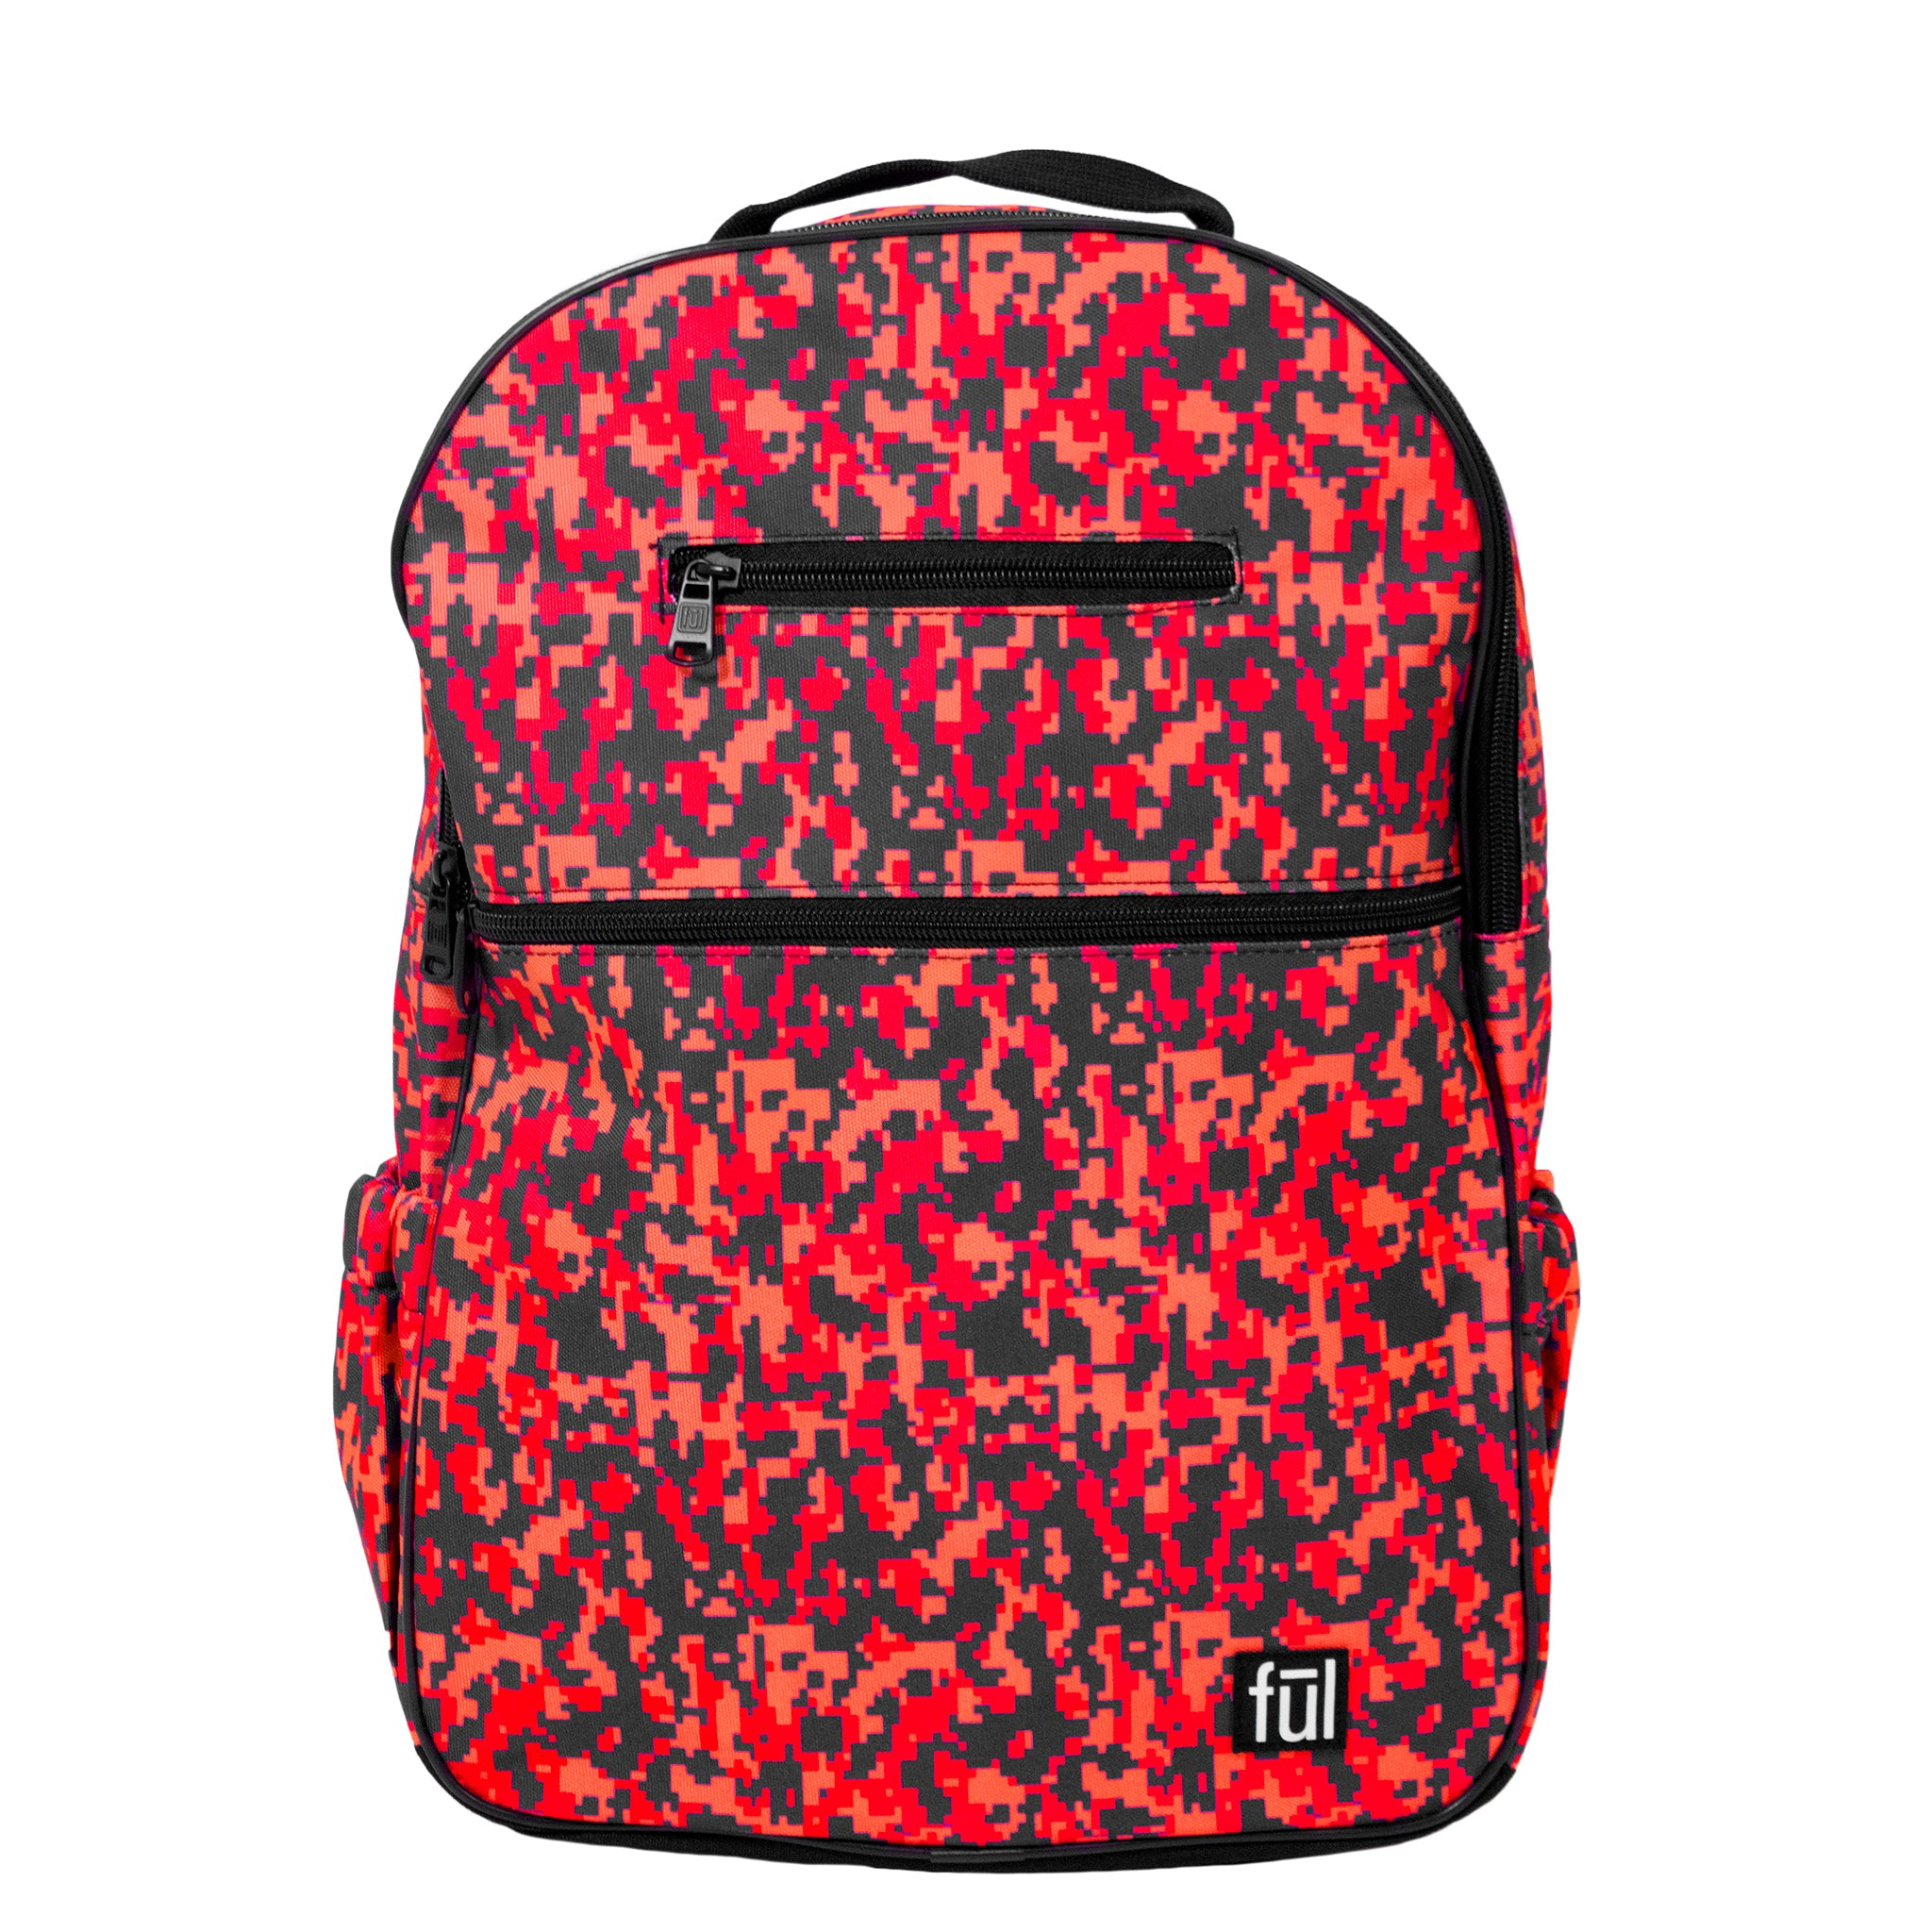 Accra Fashion Laptop Backpack, Pink Camo